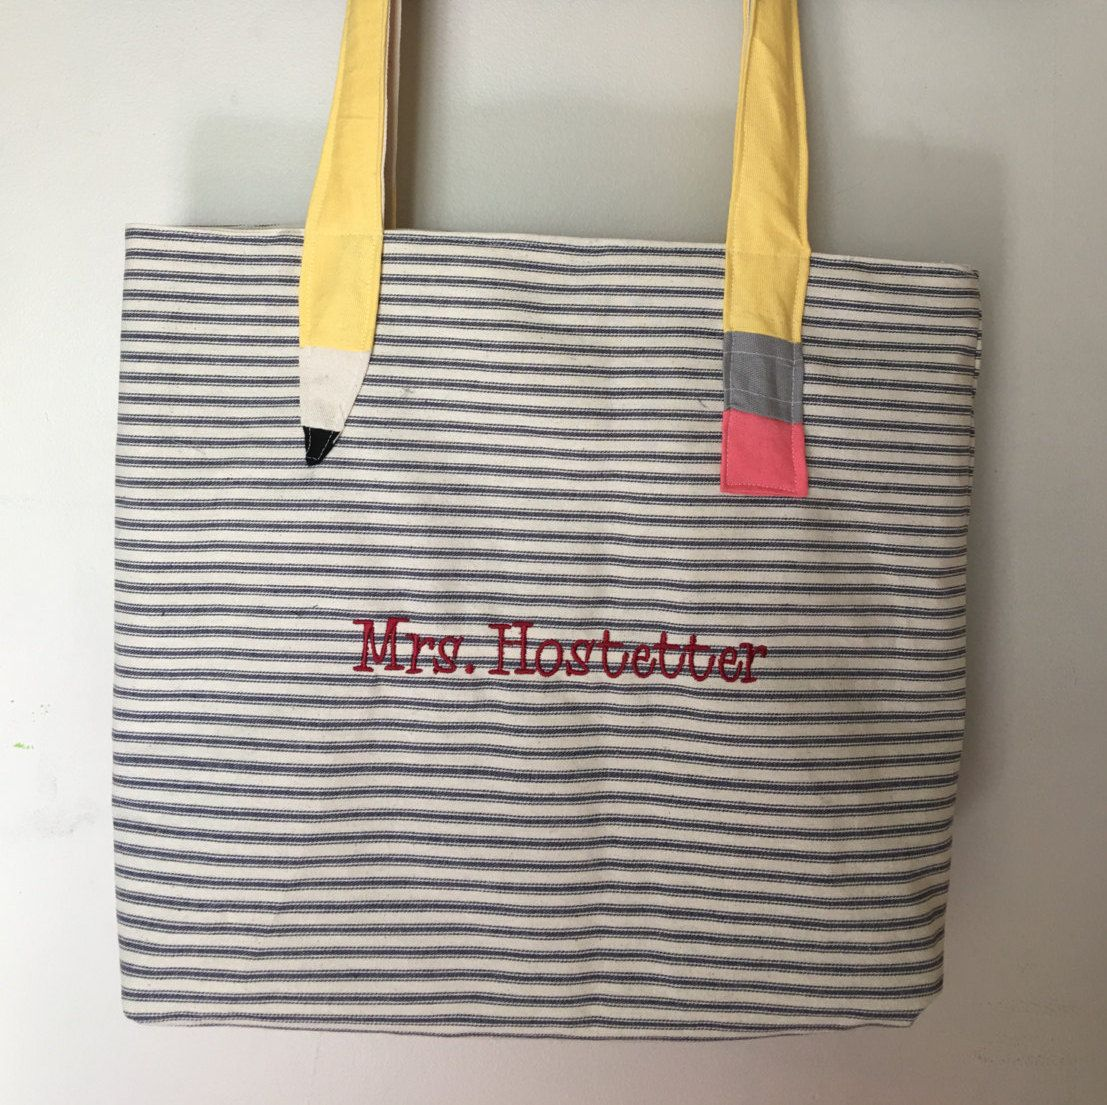 a2af77d570a Teacher Tote Bag Personalized, Teacher Gift, Art Supply Bag, Craft Tote,  Monogrammed Teacher Tote Bag, Unique Teacher Gift Ideas by IVPeasInaPod on  Etsy